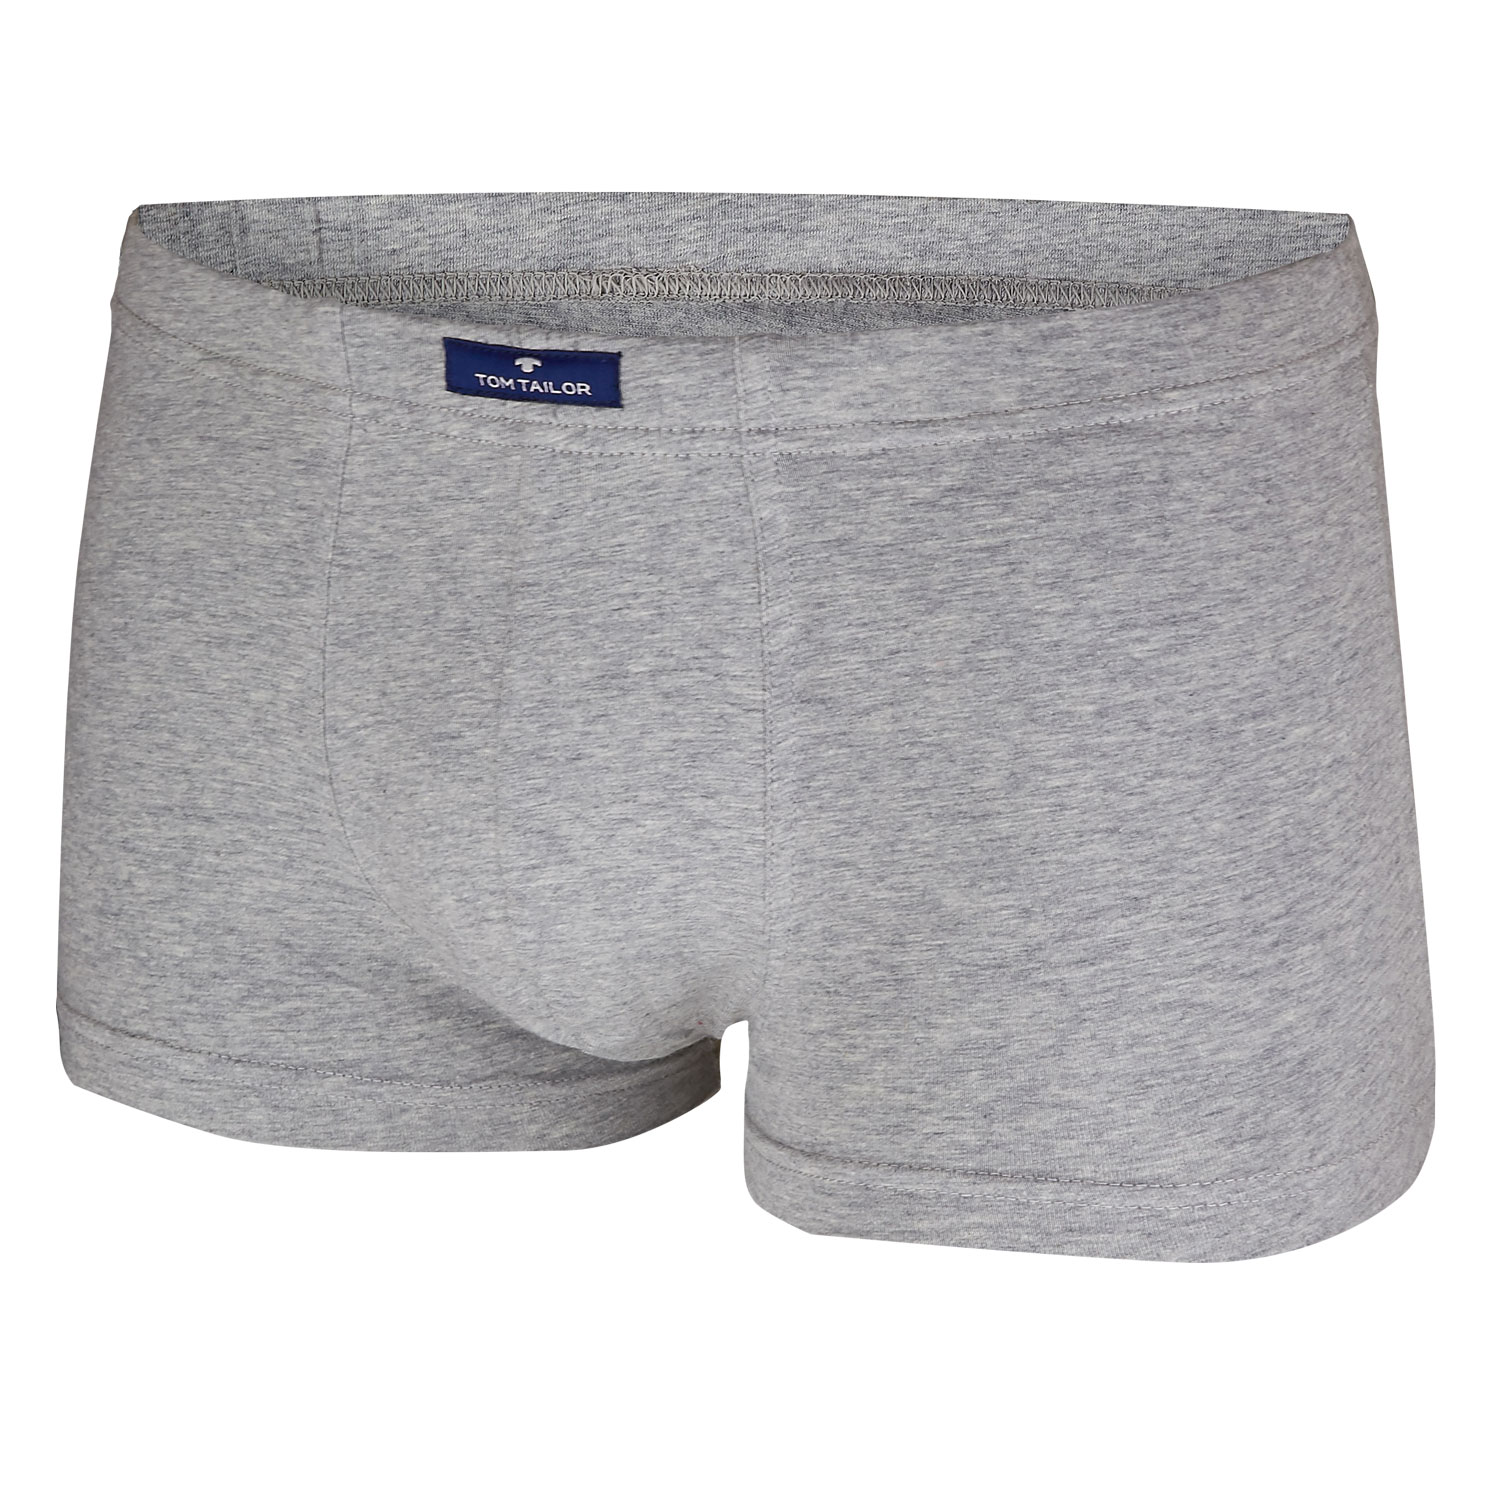 Tom Tailor Boxershorts 3er Pack 8710  – Bild 7